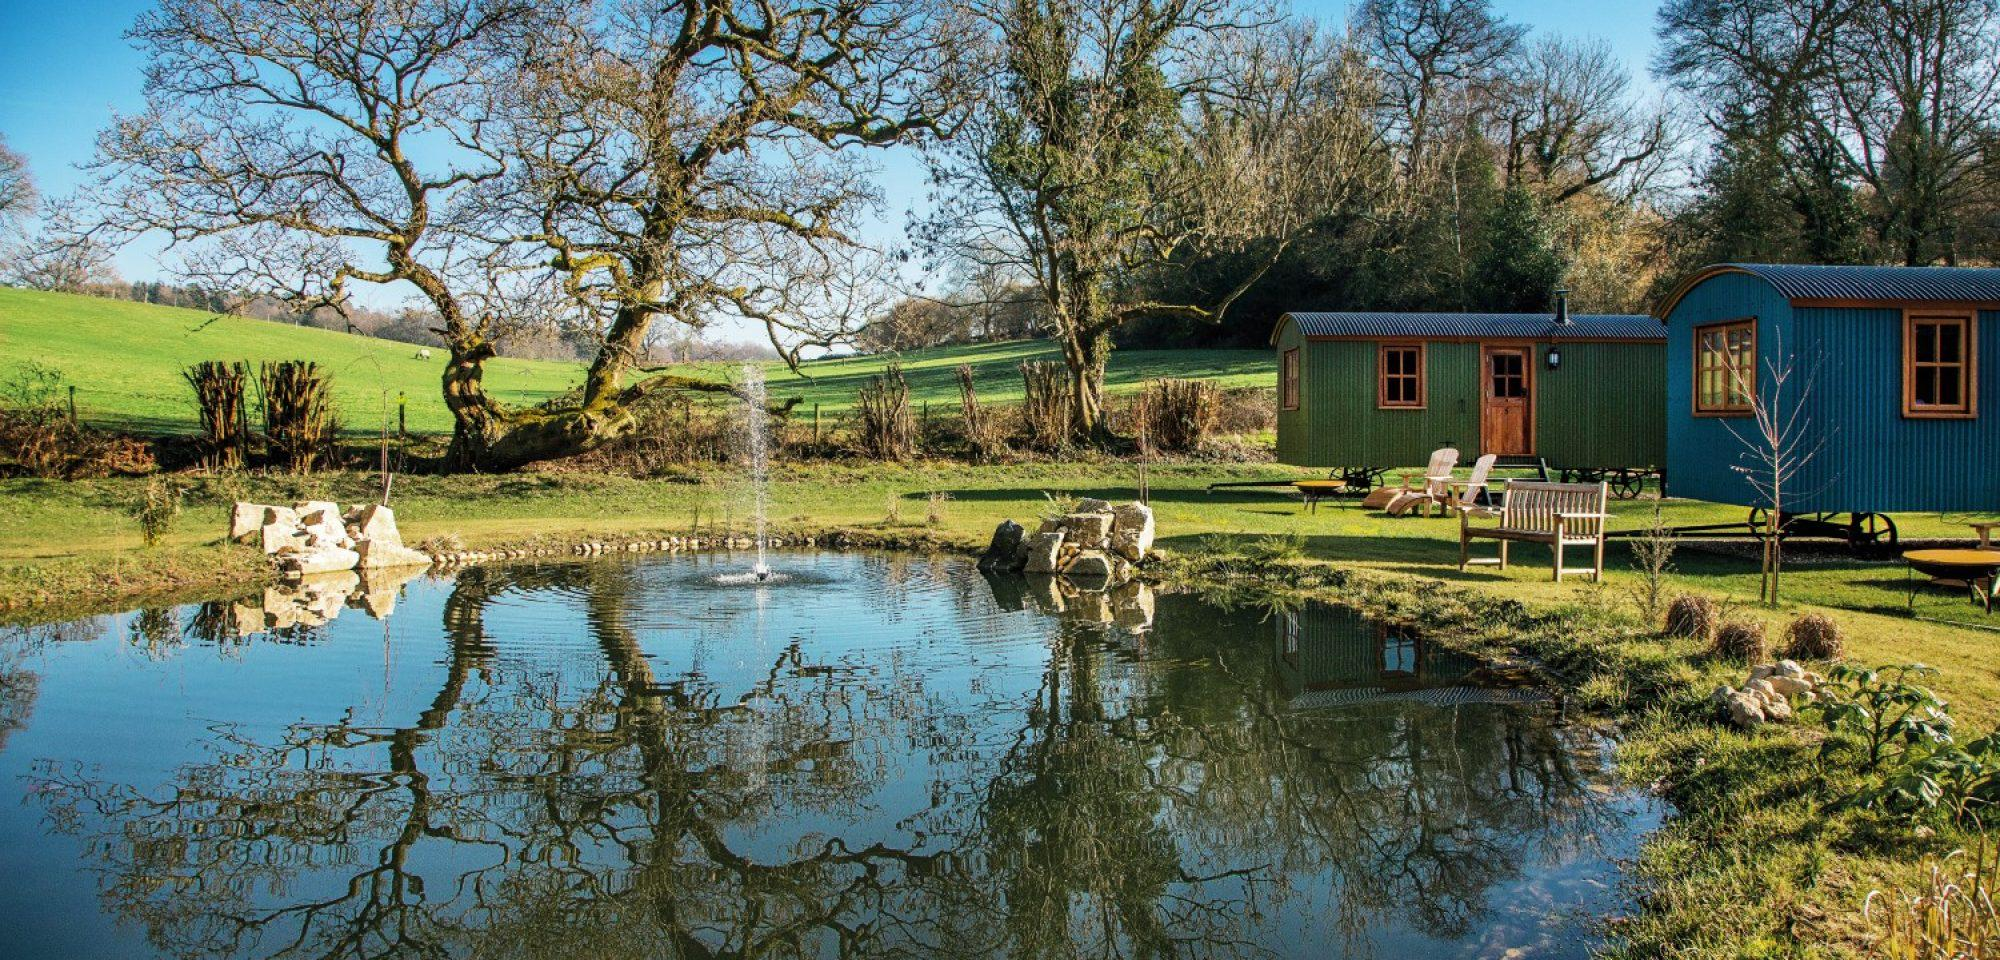 Glamping in South East England holidays at Cool Places